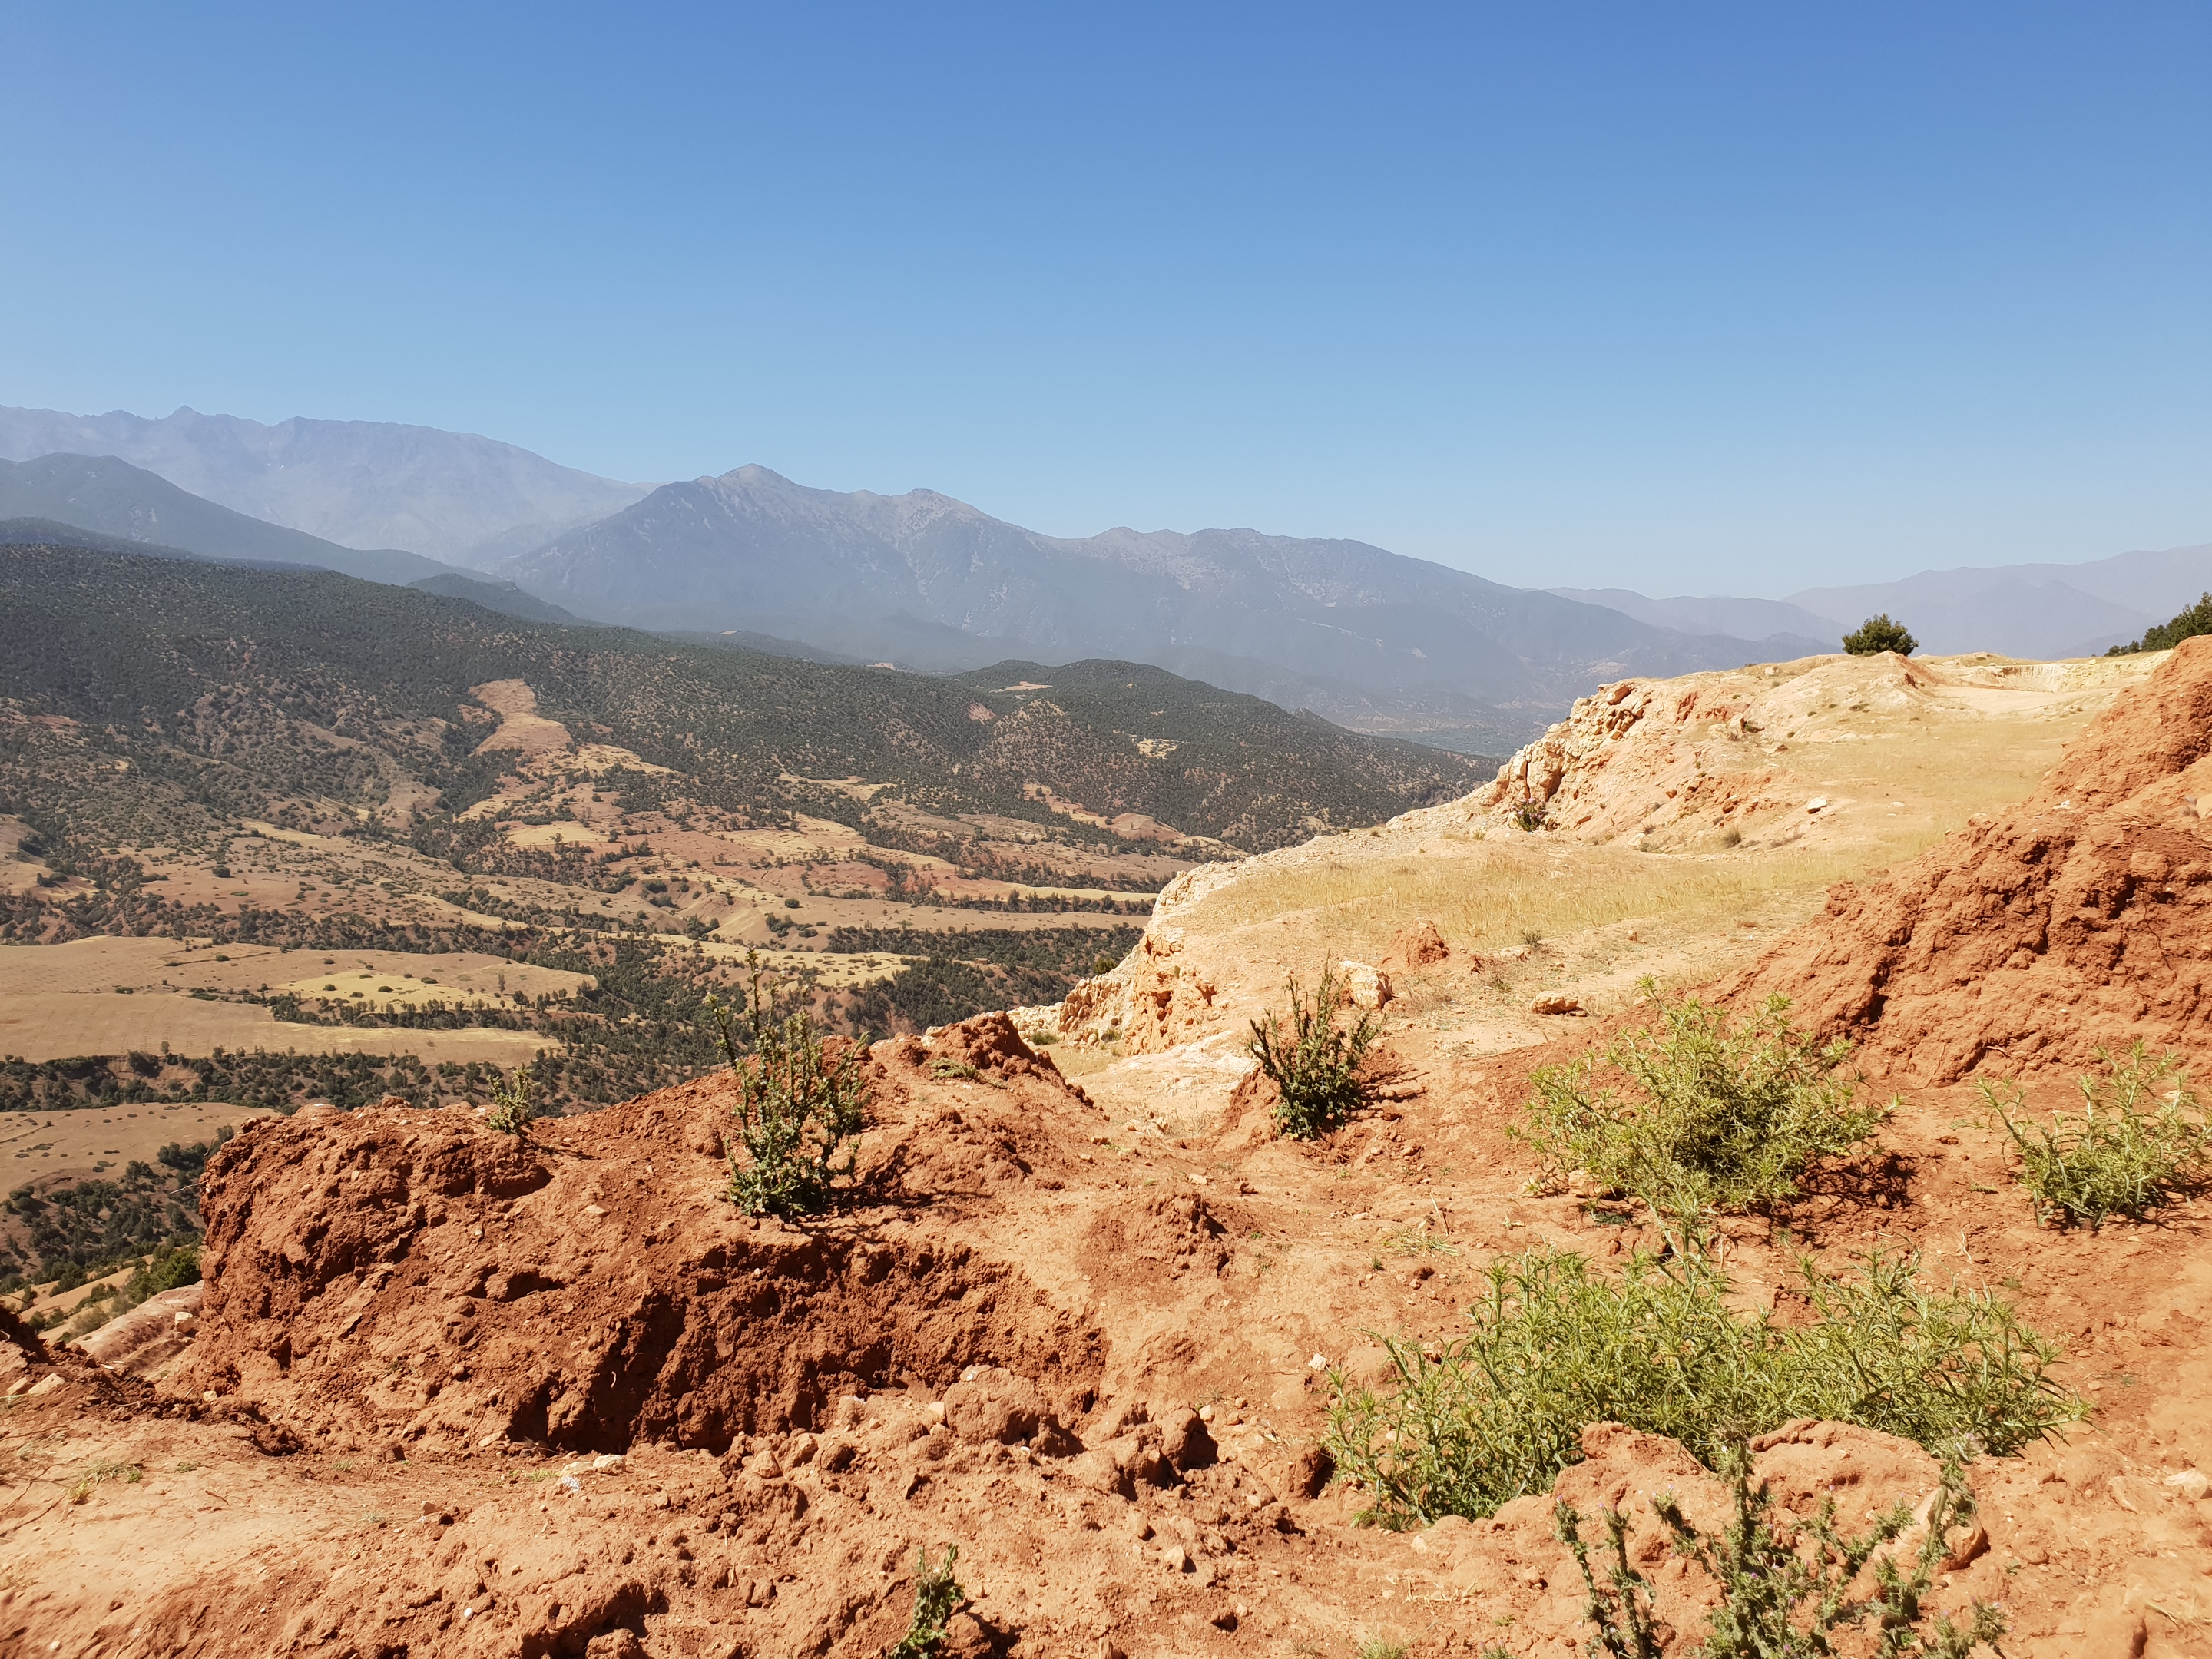 Atlas Mountains from Kik Plateau